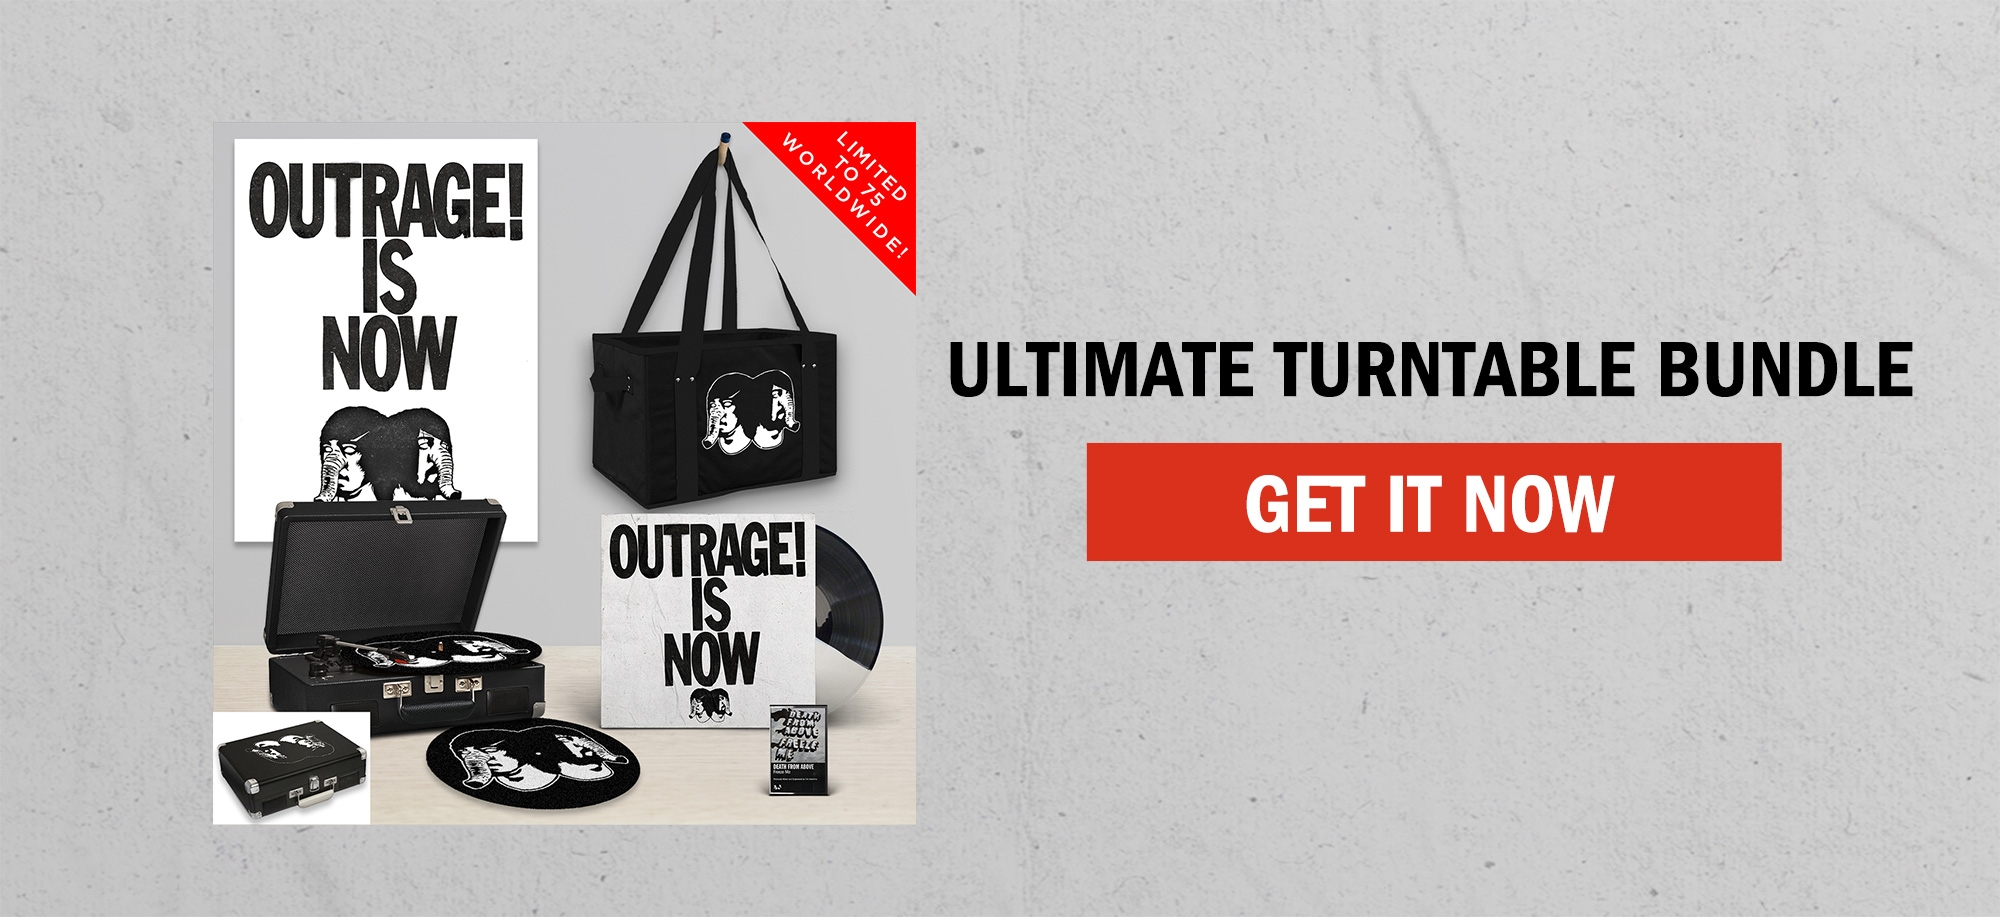 Ultimate Turntable Bundle